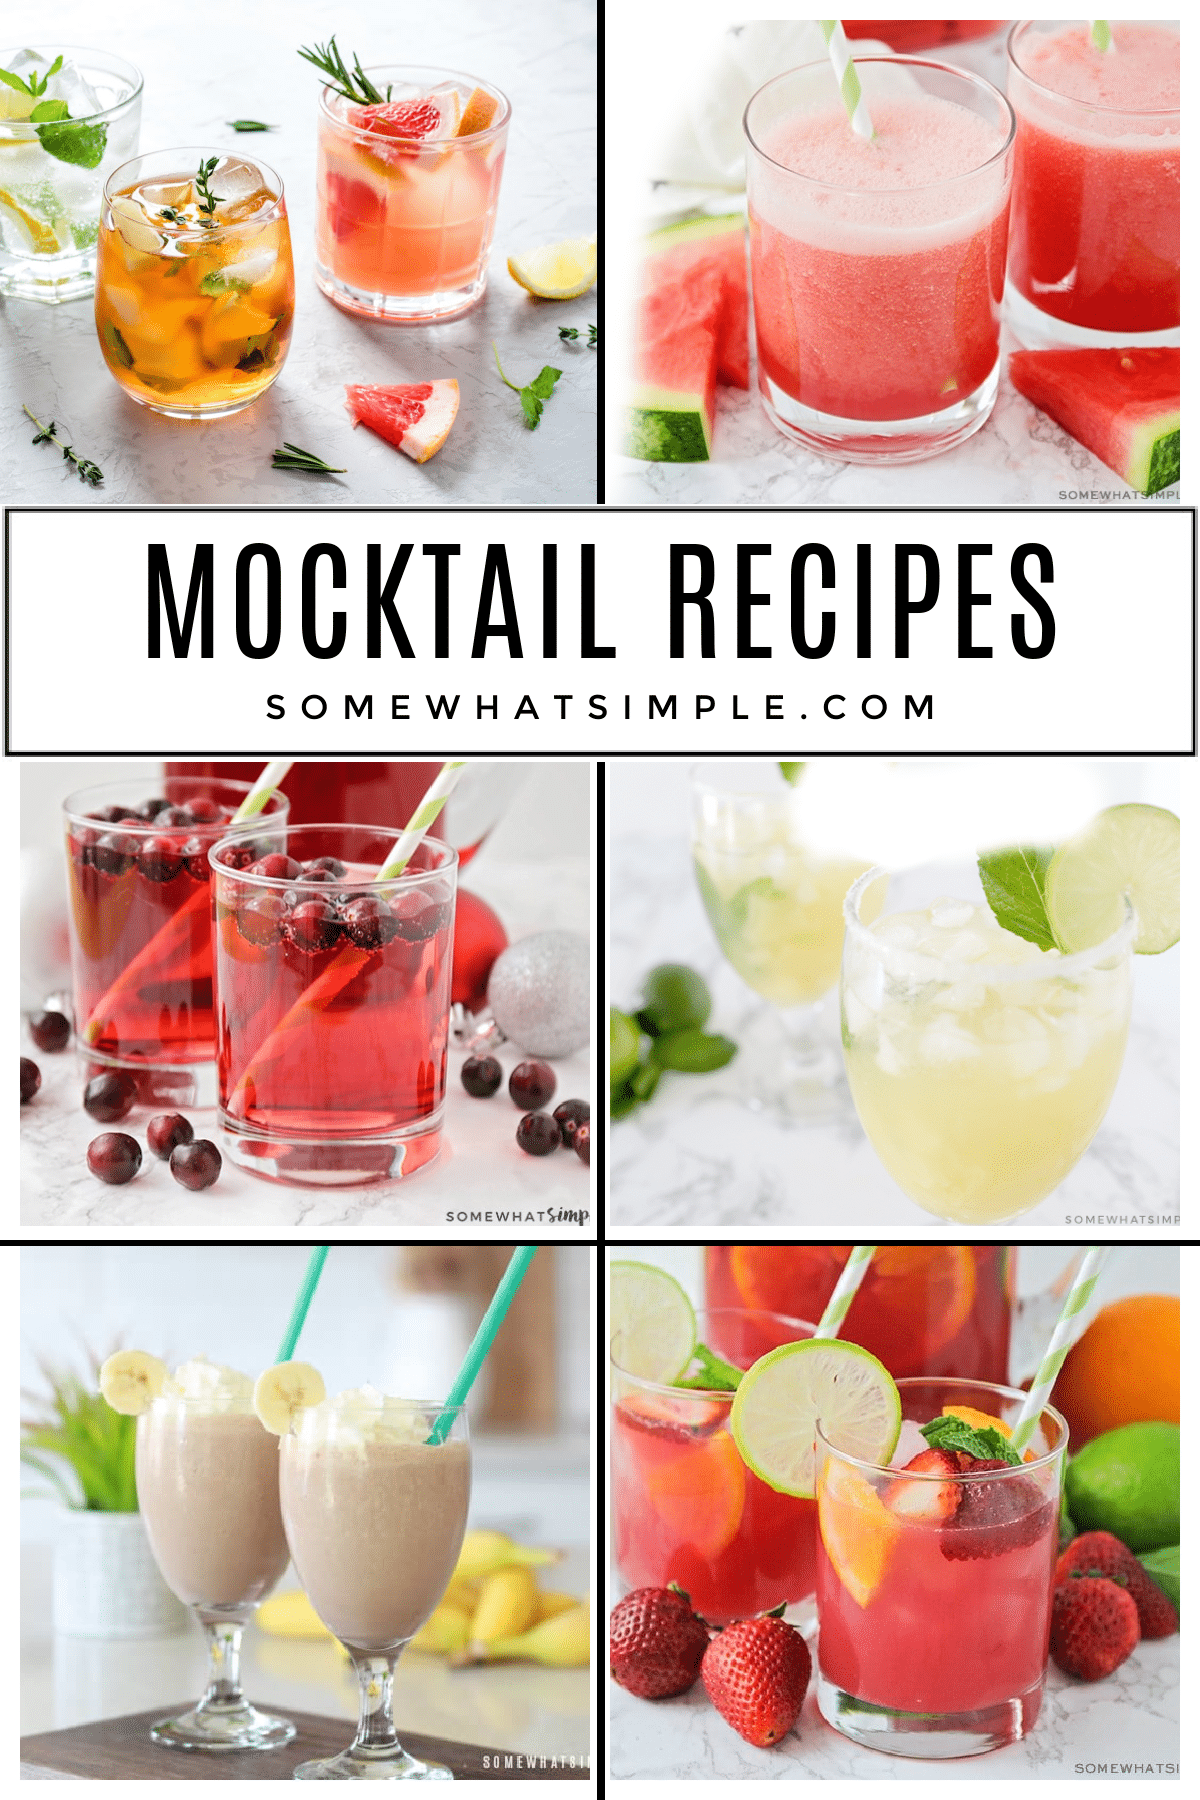 """10 favorite Mocktail Recipes, or """"Mocktails"""" that are easy to make, simply refreshing, and totally delicious! The perfect party drinks for guests of all ages! via @somewhatsimple"""